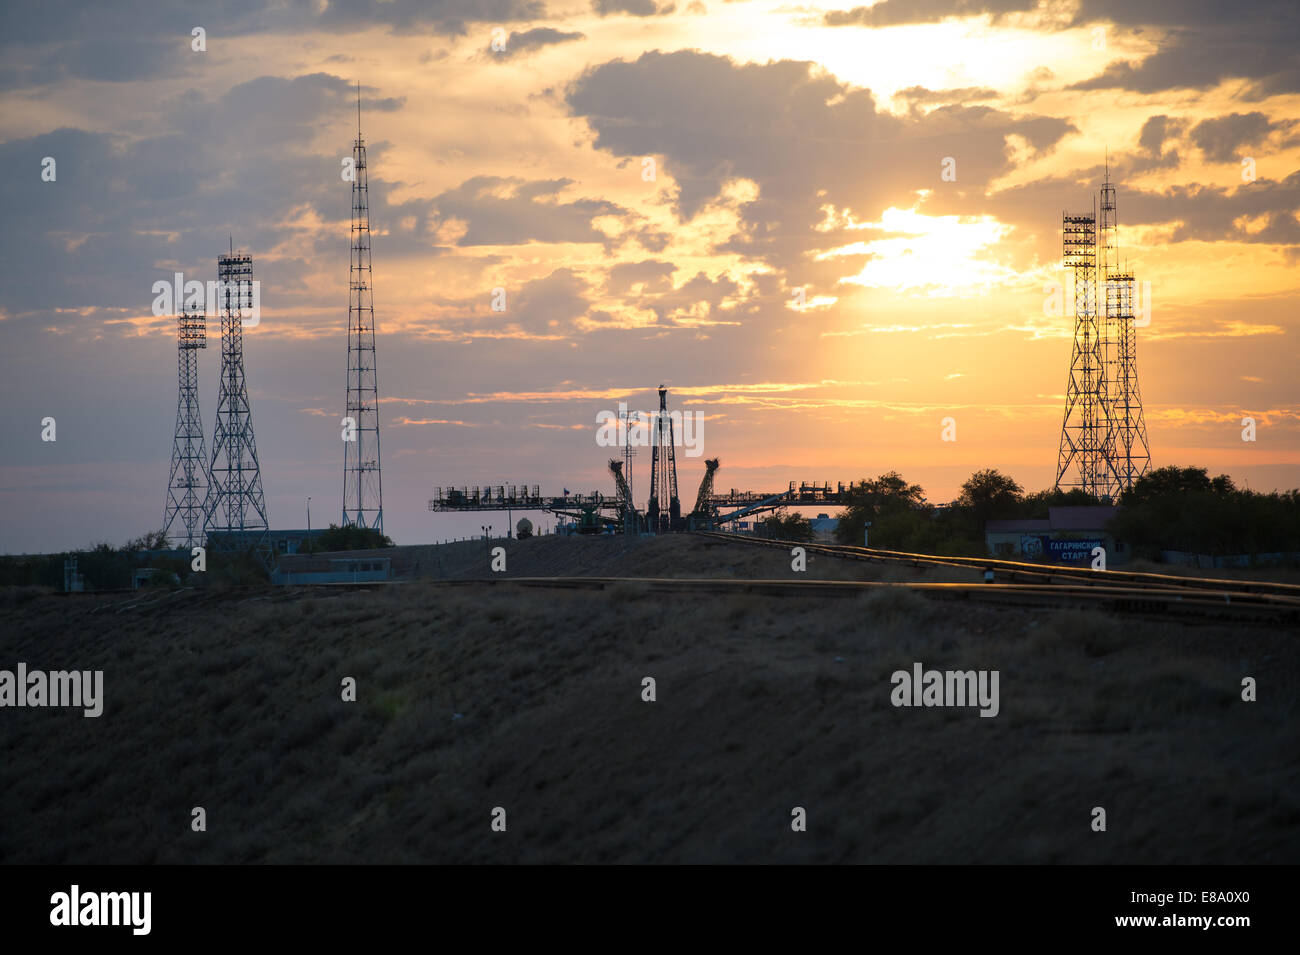 The sun rises behind the Soyuz launch pad as the Soyuz TMA-14M spacecraft is rolled out by train to the launch pad - Stock Image